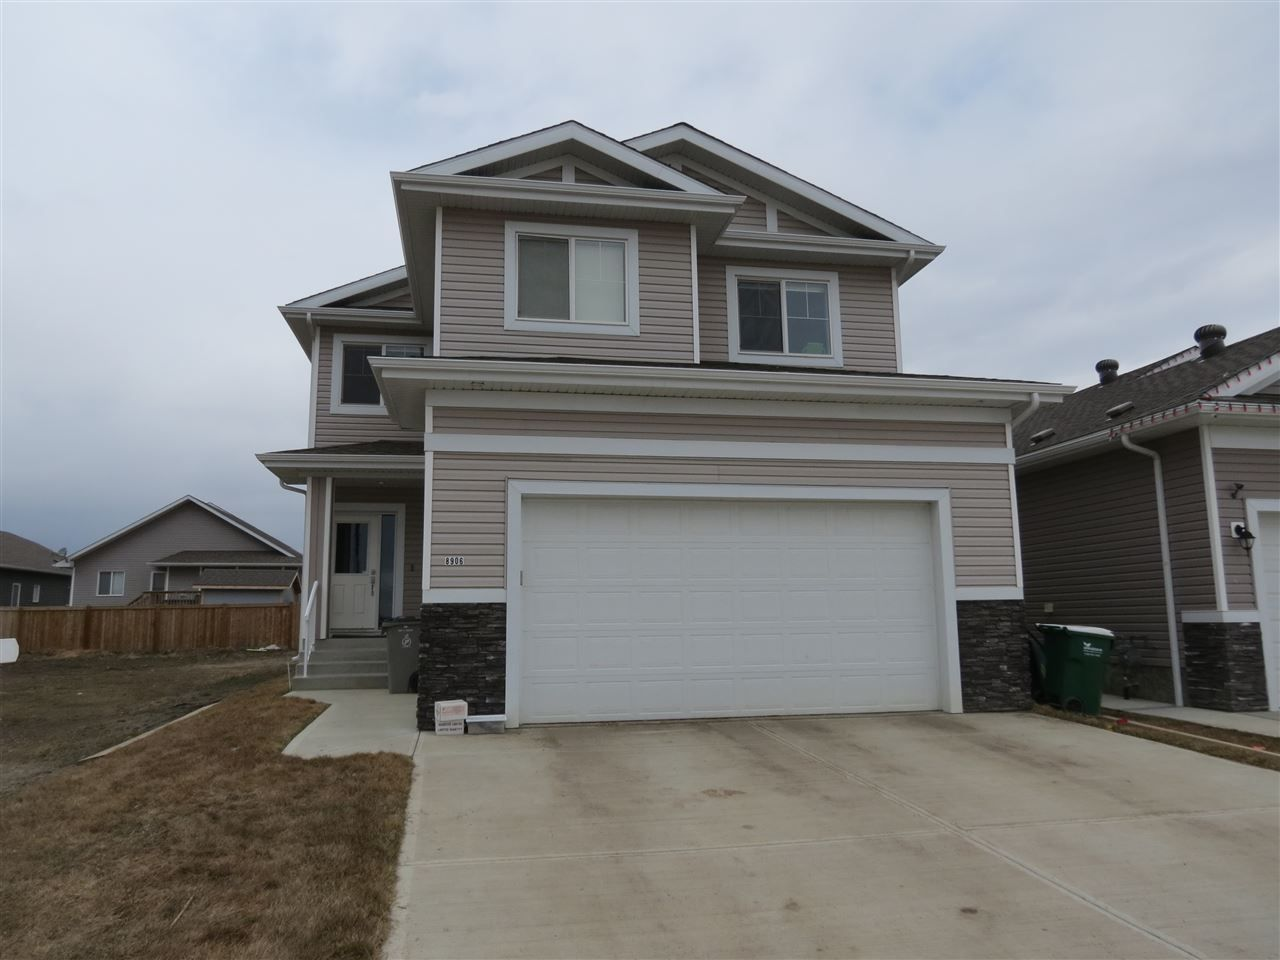 Main Photo: 8906 96A Street: Morinville House for sale : MLS®# E4141155